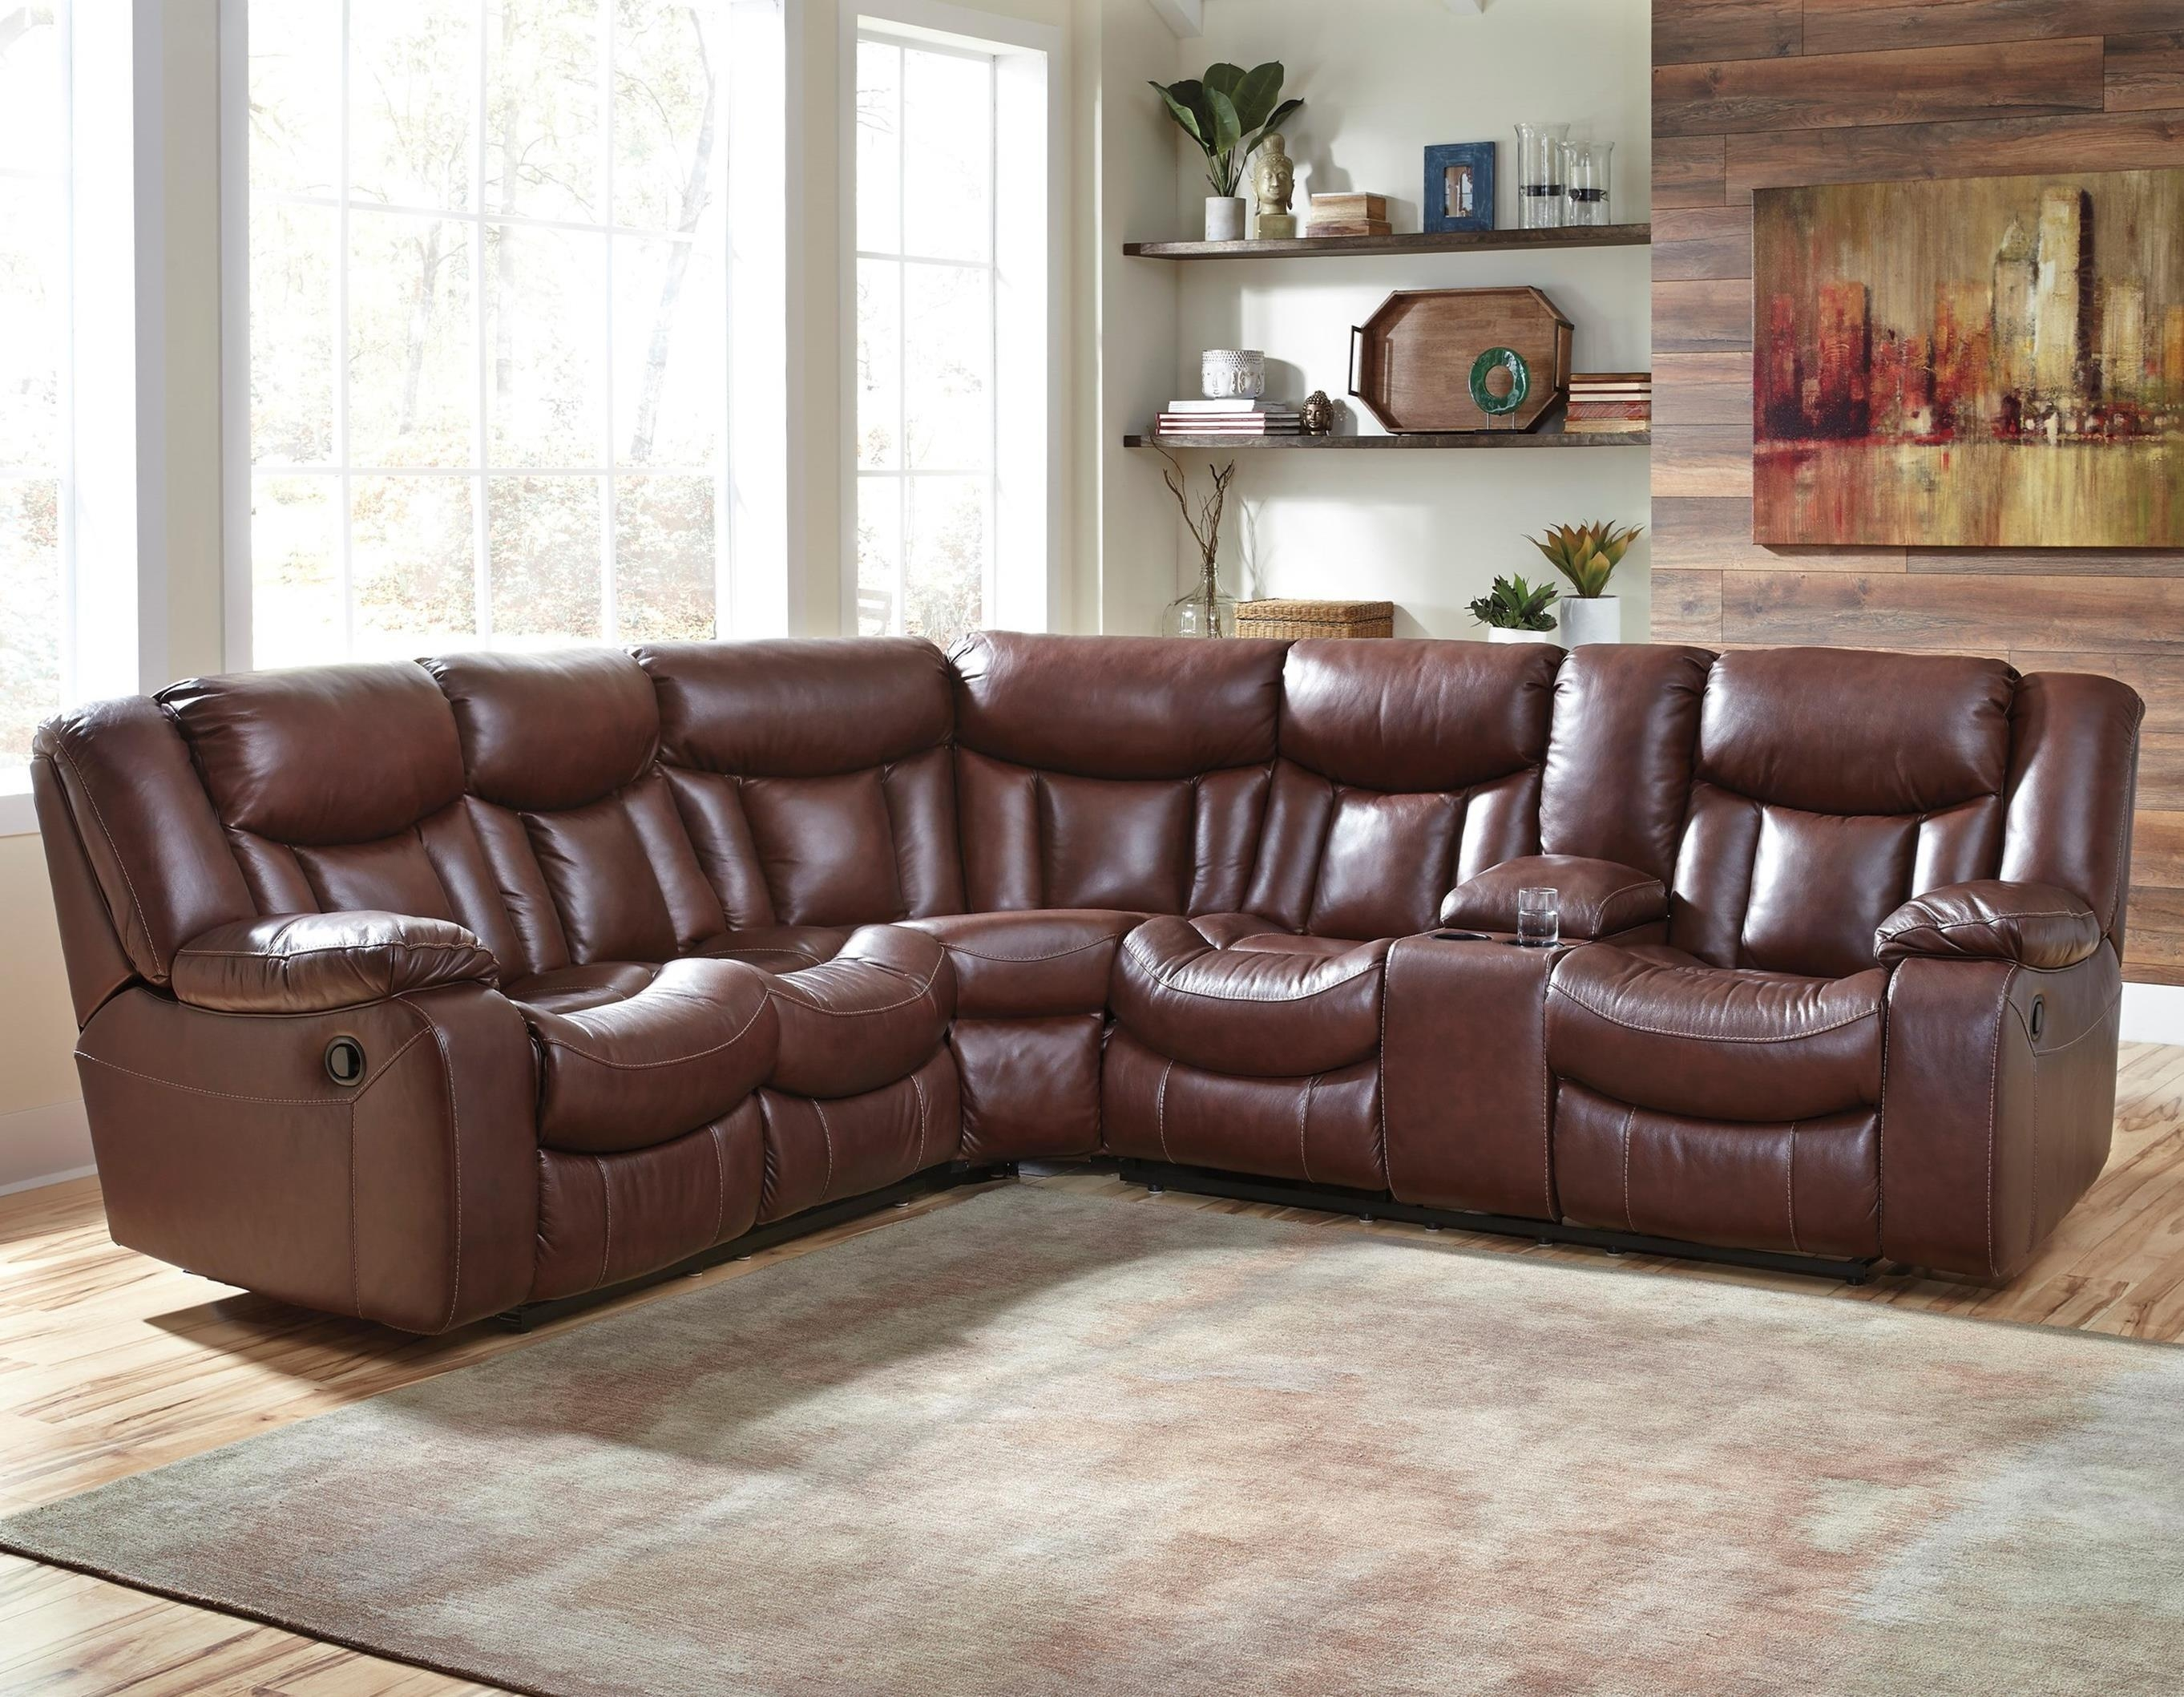 Benchcraft Amaroo Brown Leather Match 2 Piece Reclining Sectional Inside Benchcraft Leather Sofas (Image 2 of 20)